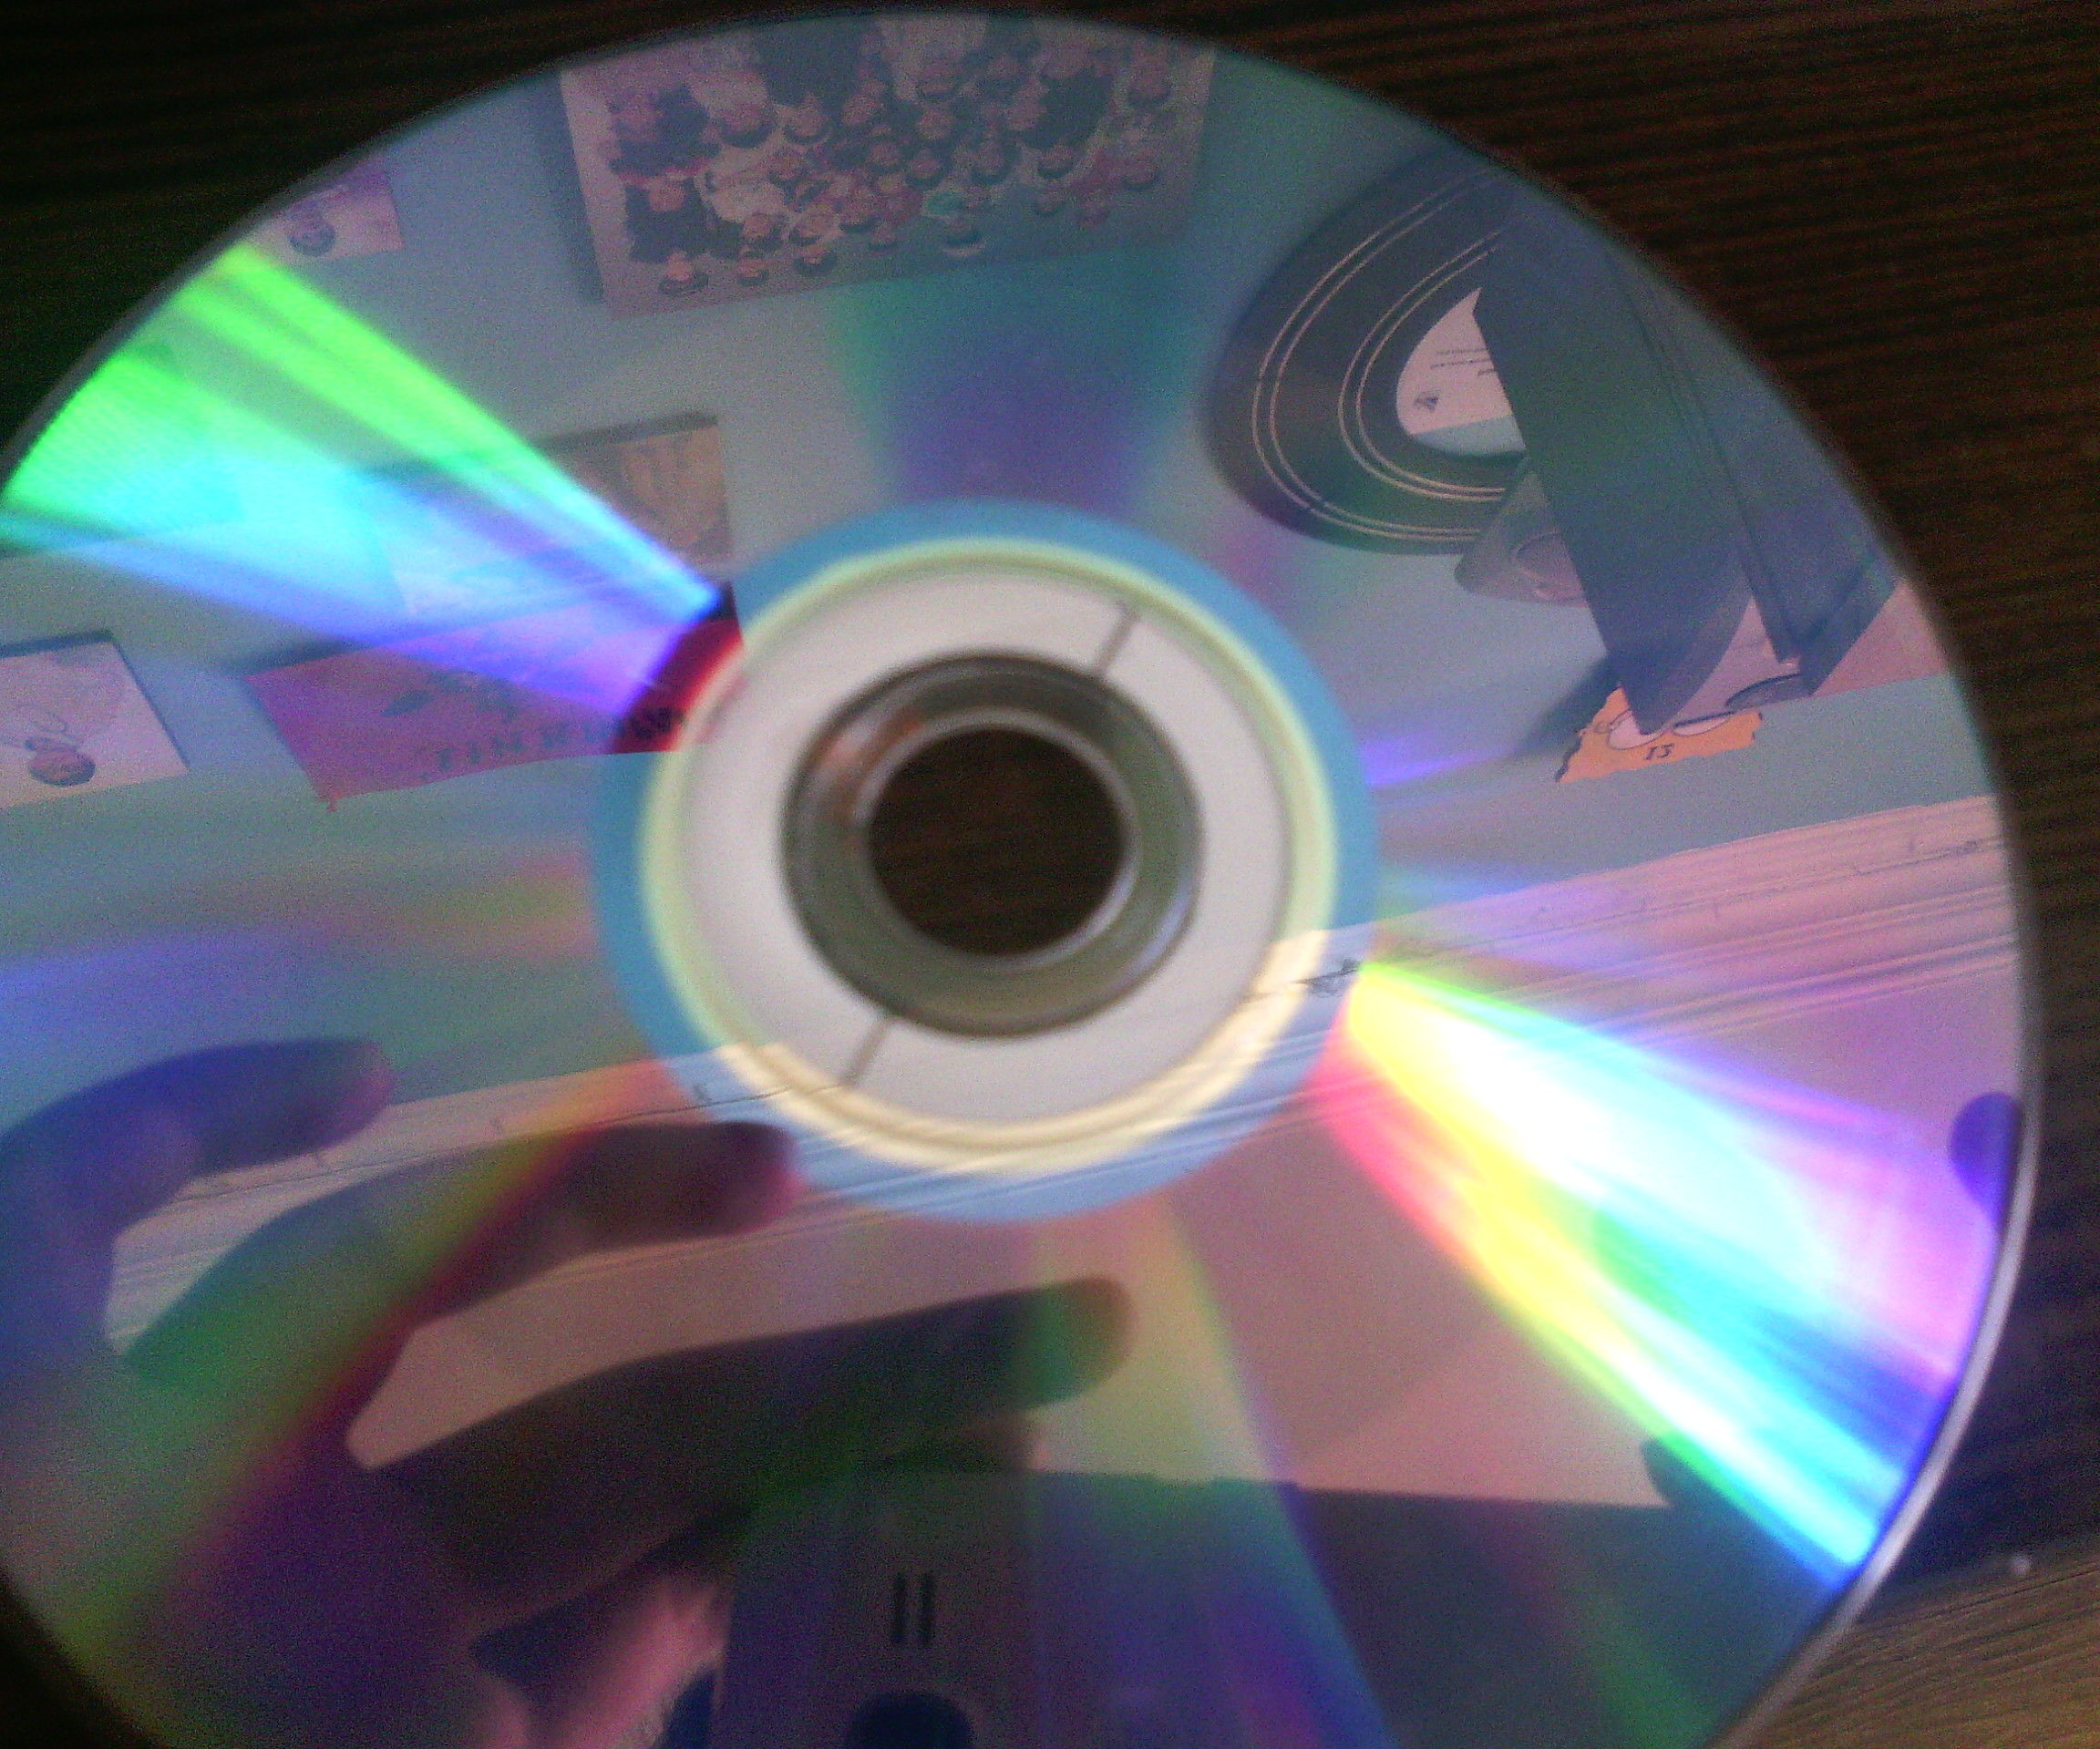 How to Burn Ps2 Games: 5 Steps